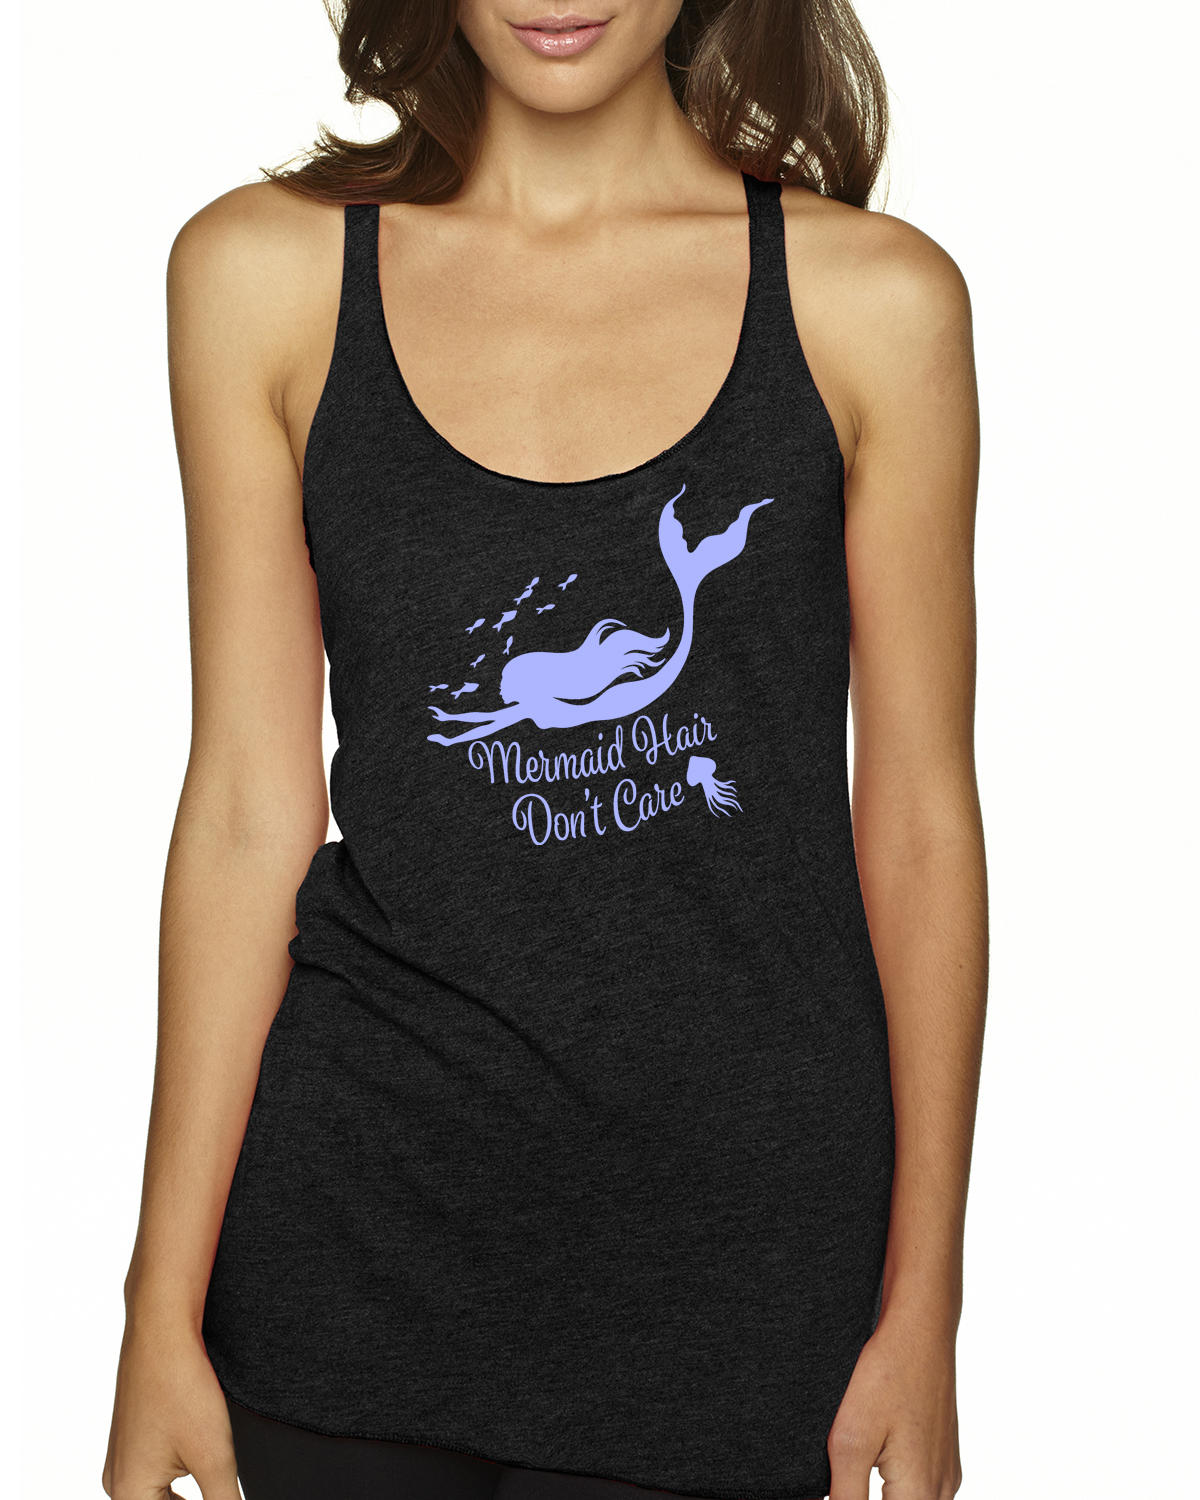 Mermaid Hair, Don't Care Racer-back tank top (Black)